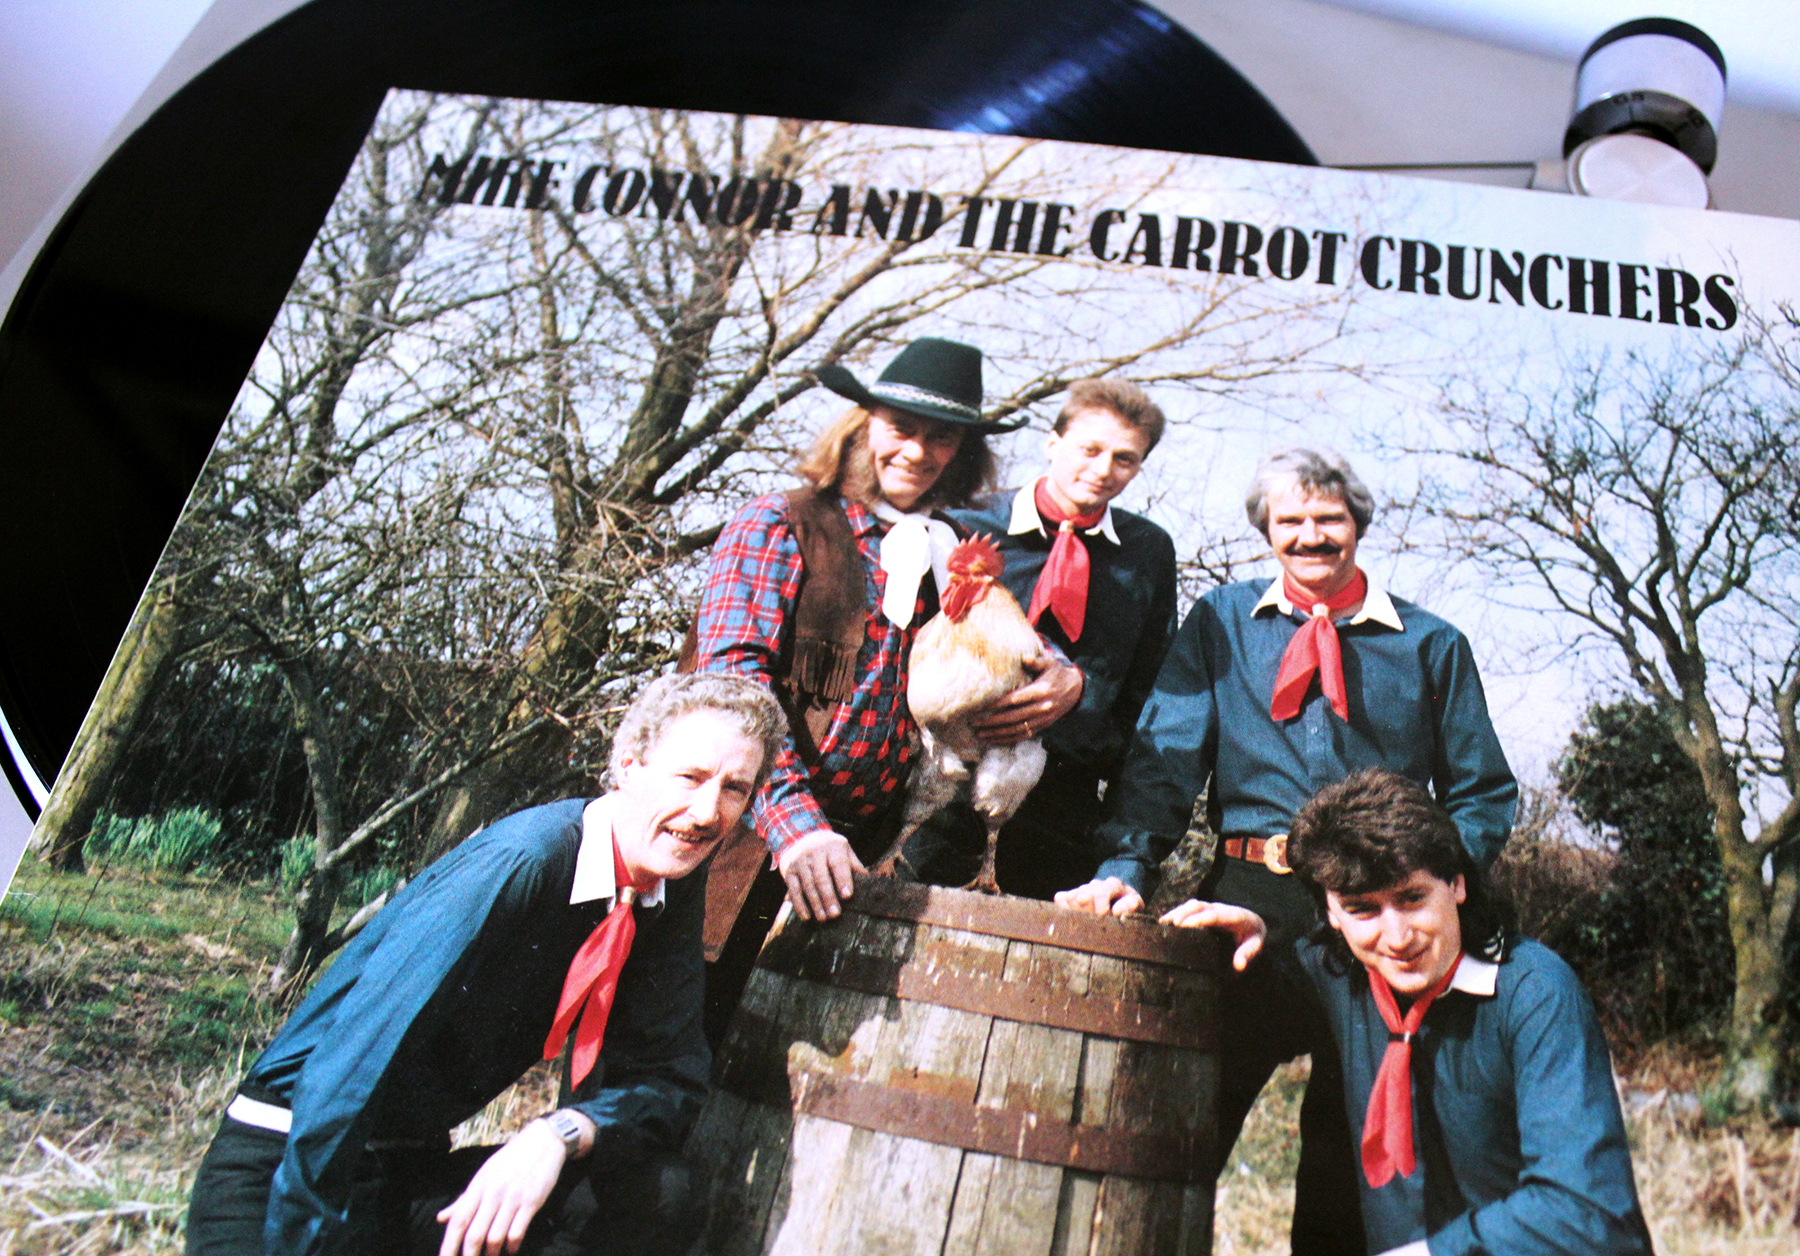 Mike Connor & the Carrot Crunchers - Back In The Cotswolds (Bumpkin Records  - Bumpkin 001, 1986)